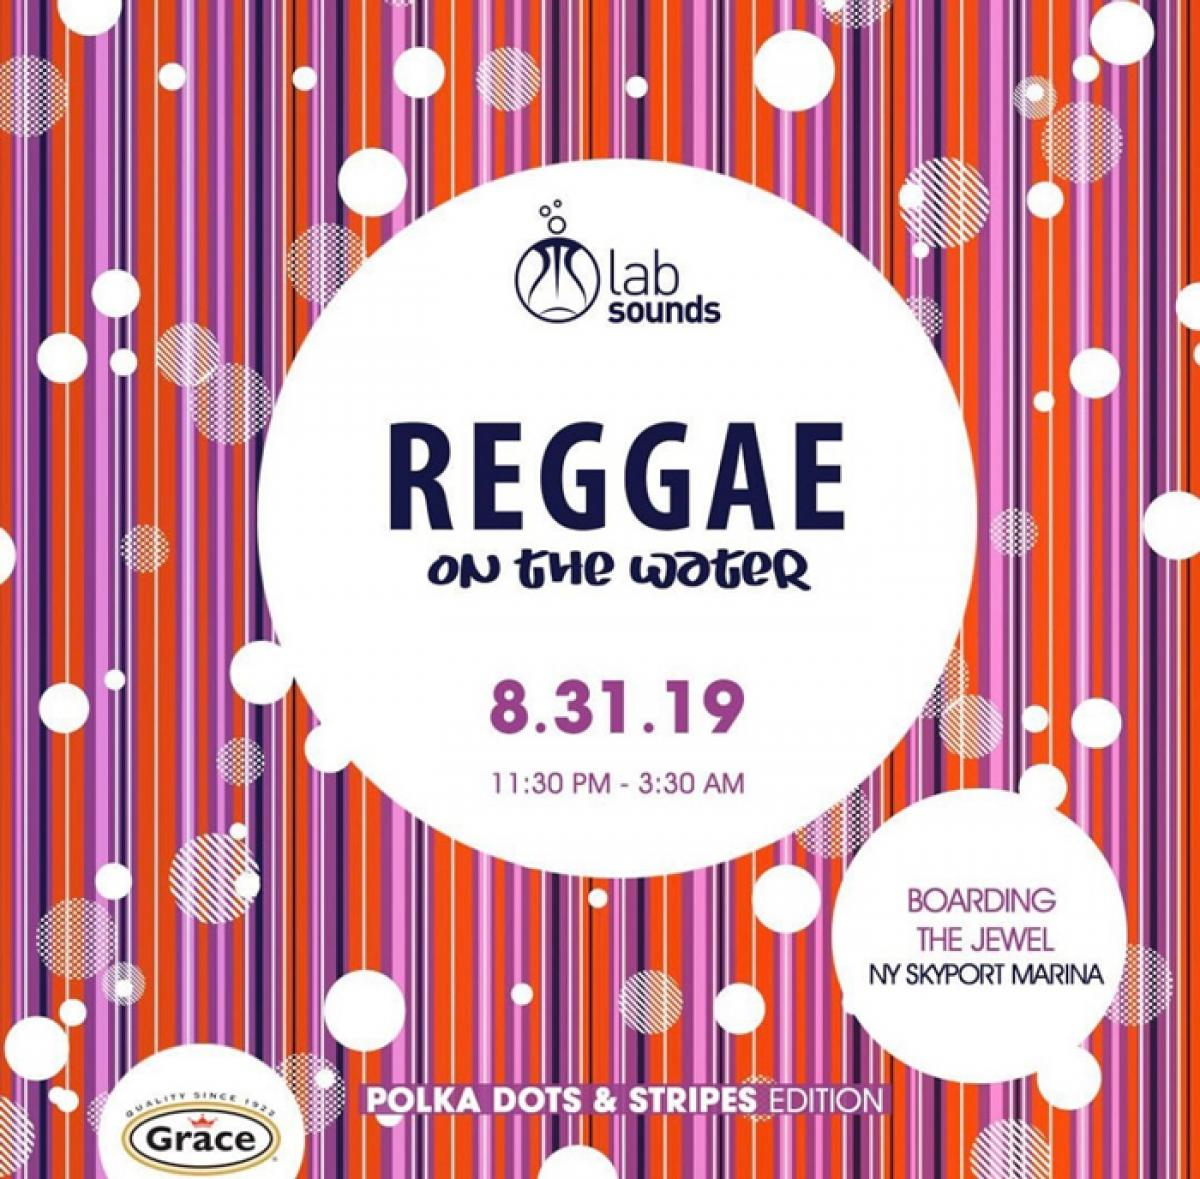 Reggae on the Water flyer or graphic.